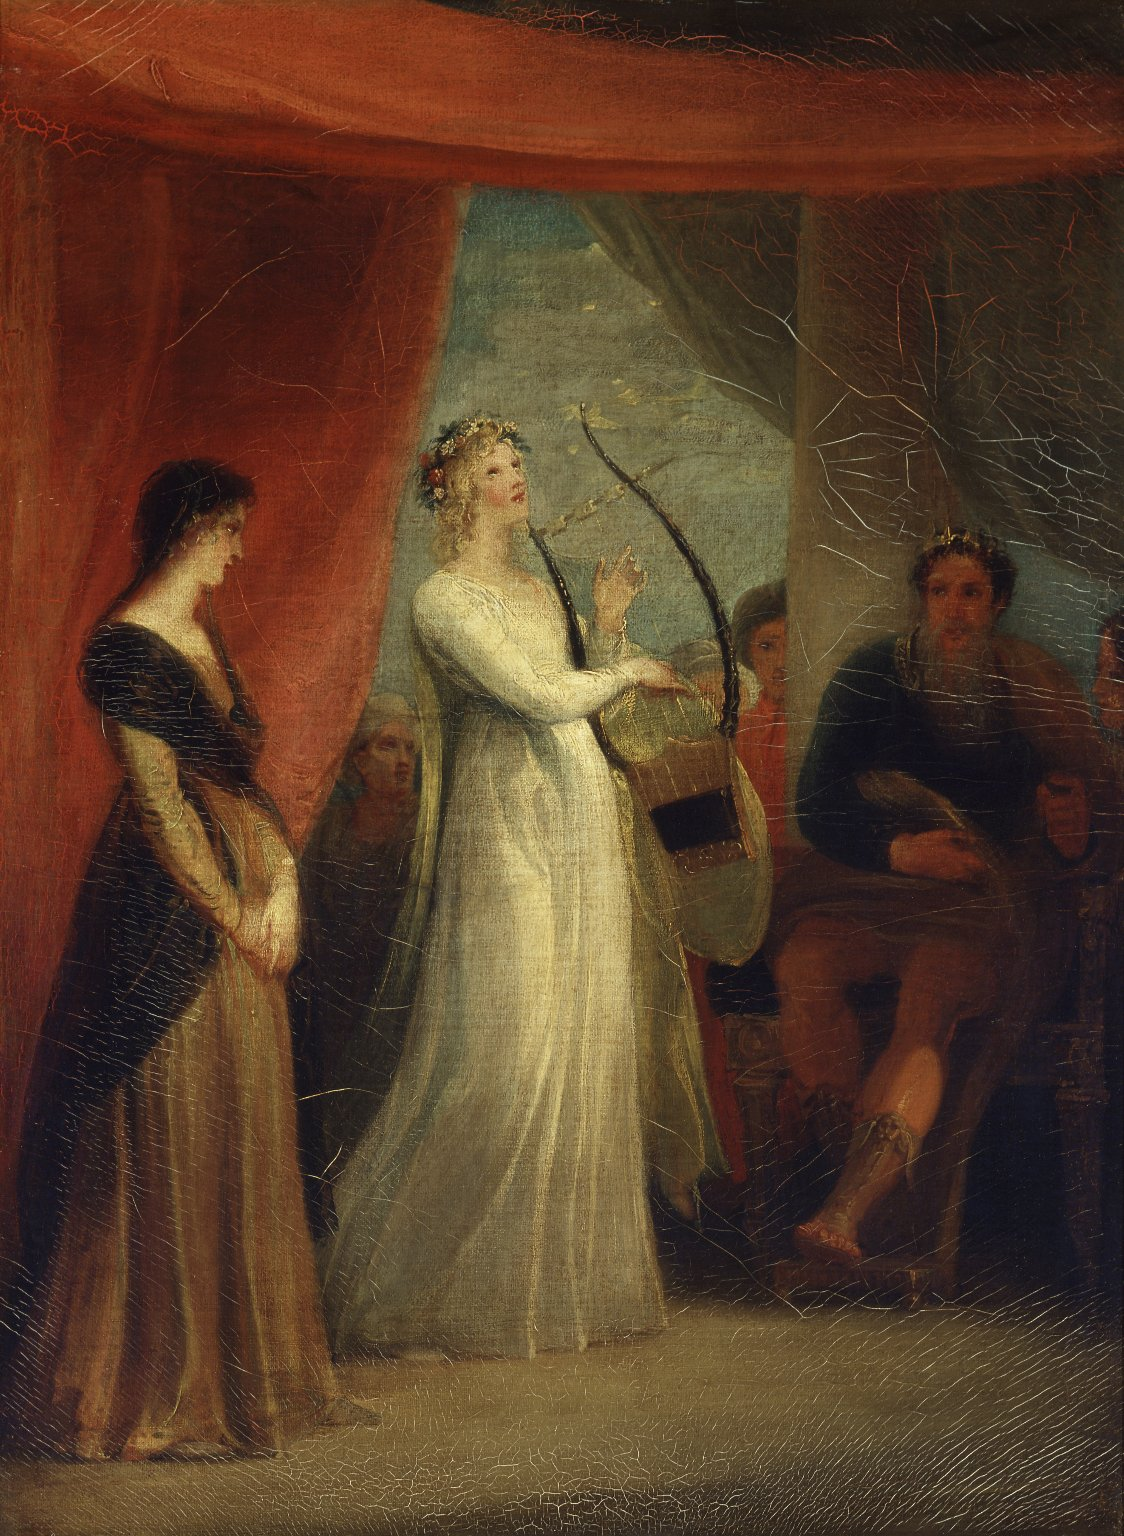 Marina sings before Pericles (Stothard, 1825). Image credit: Folger Shakespeare Library Digital Image Collection/Wikimedia Commons [Licensed under CC BY 4.0]